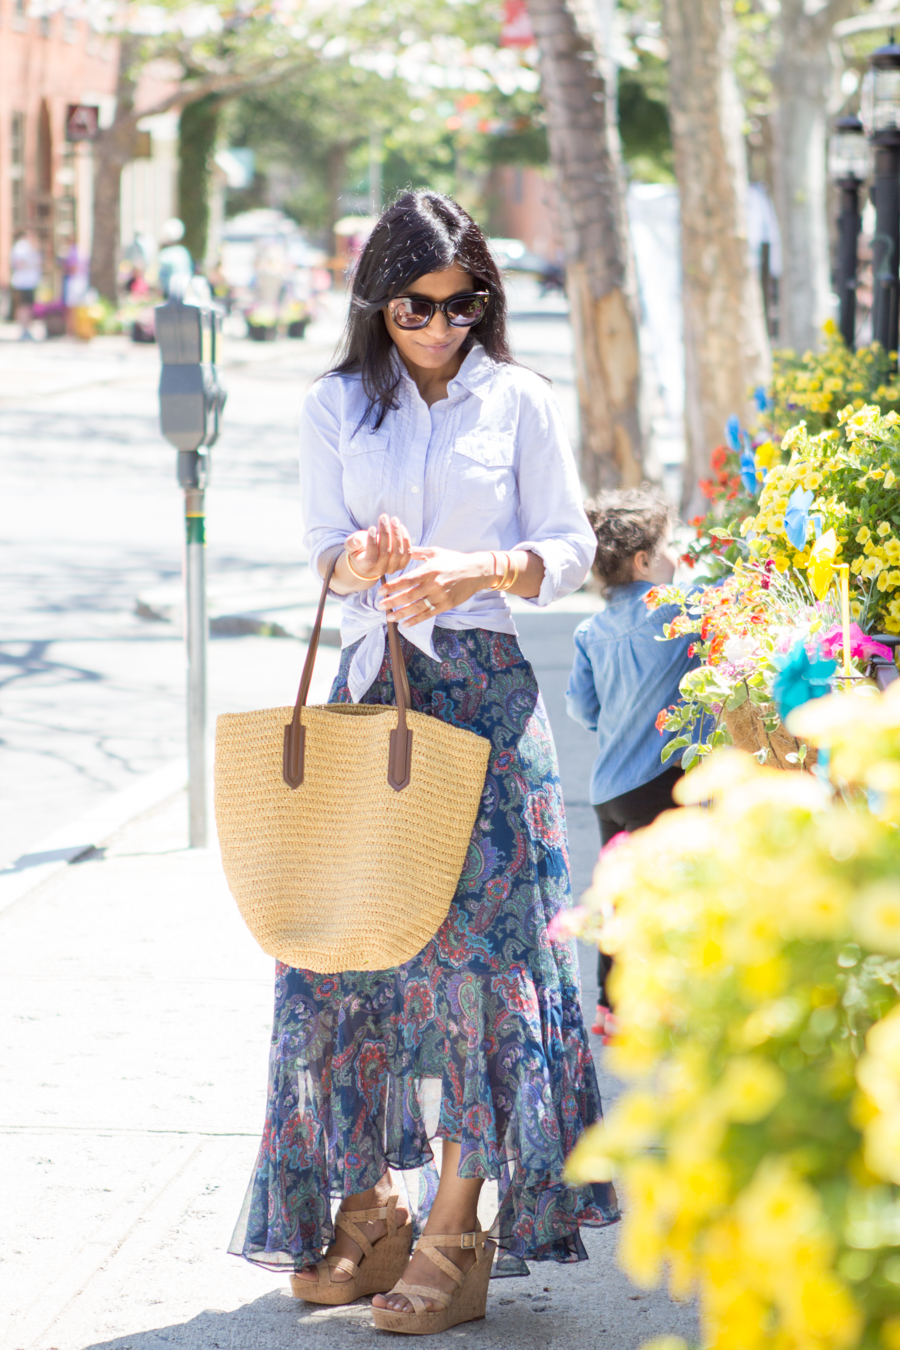 anthropologie, paisley, silk skirt, summer maxi, summer style, cork wedge, summer lookbook, farmer's market, straw tote, wedges, banana republic, button-down shirt, petite fashion, floaty. madewell, jcrew